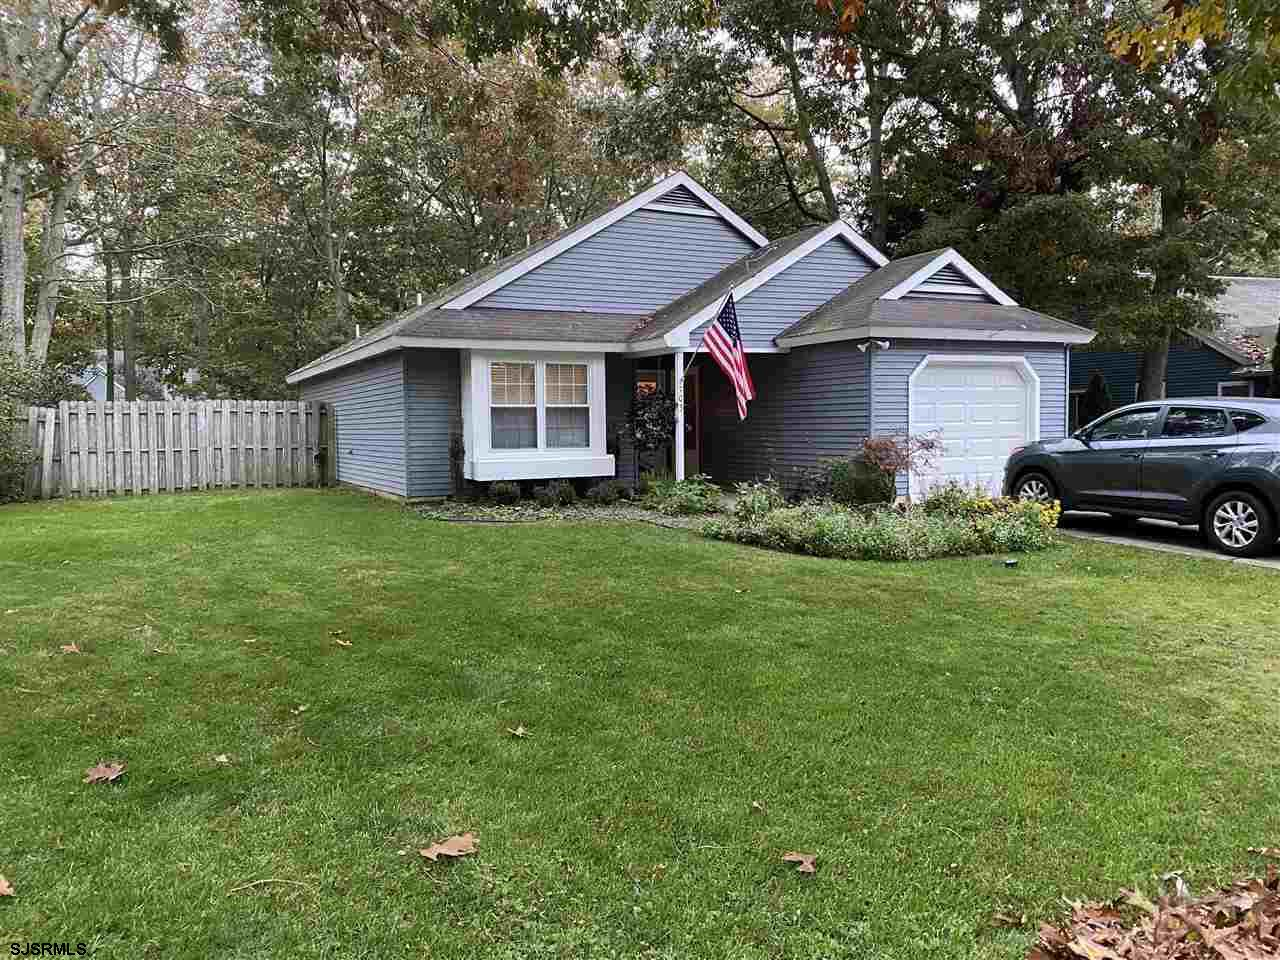 Absolutely perfect 1st Home has 3 bedrooms, 2 full baths, hardwood throughout, s/s appliances, Flori